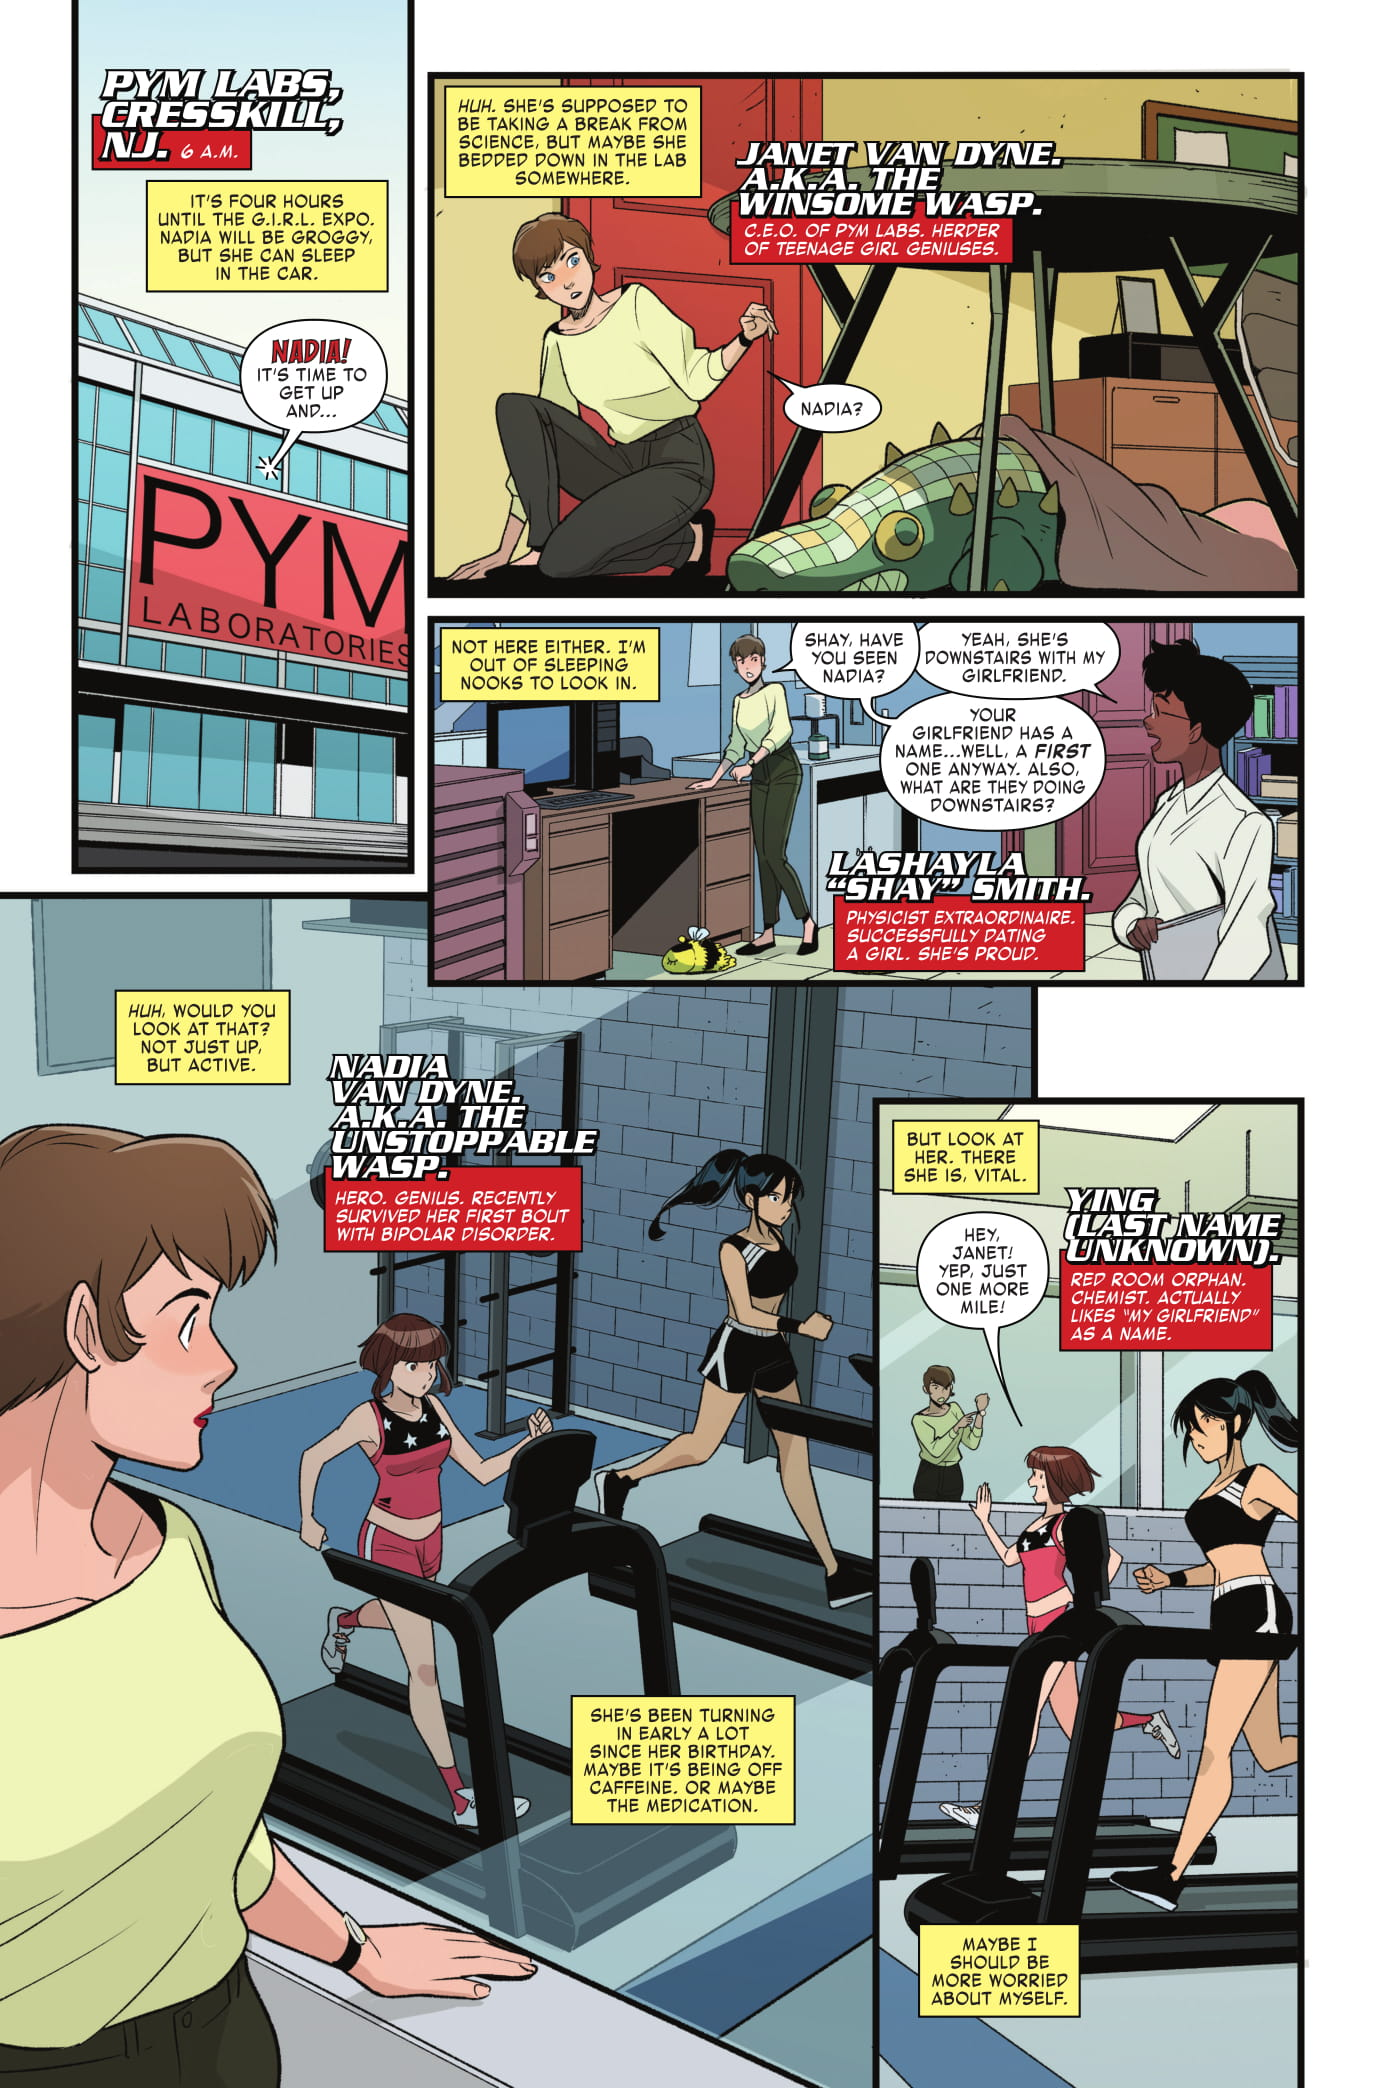 Unstoppable Wasp #8 preview page 1